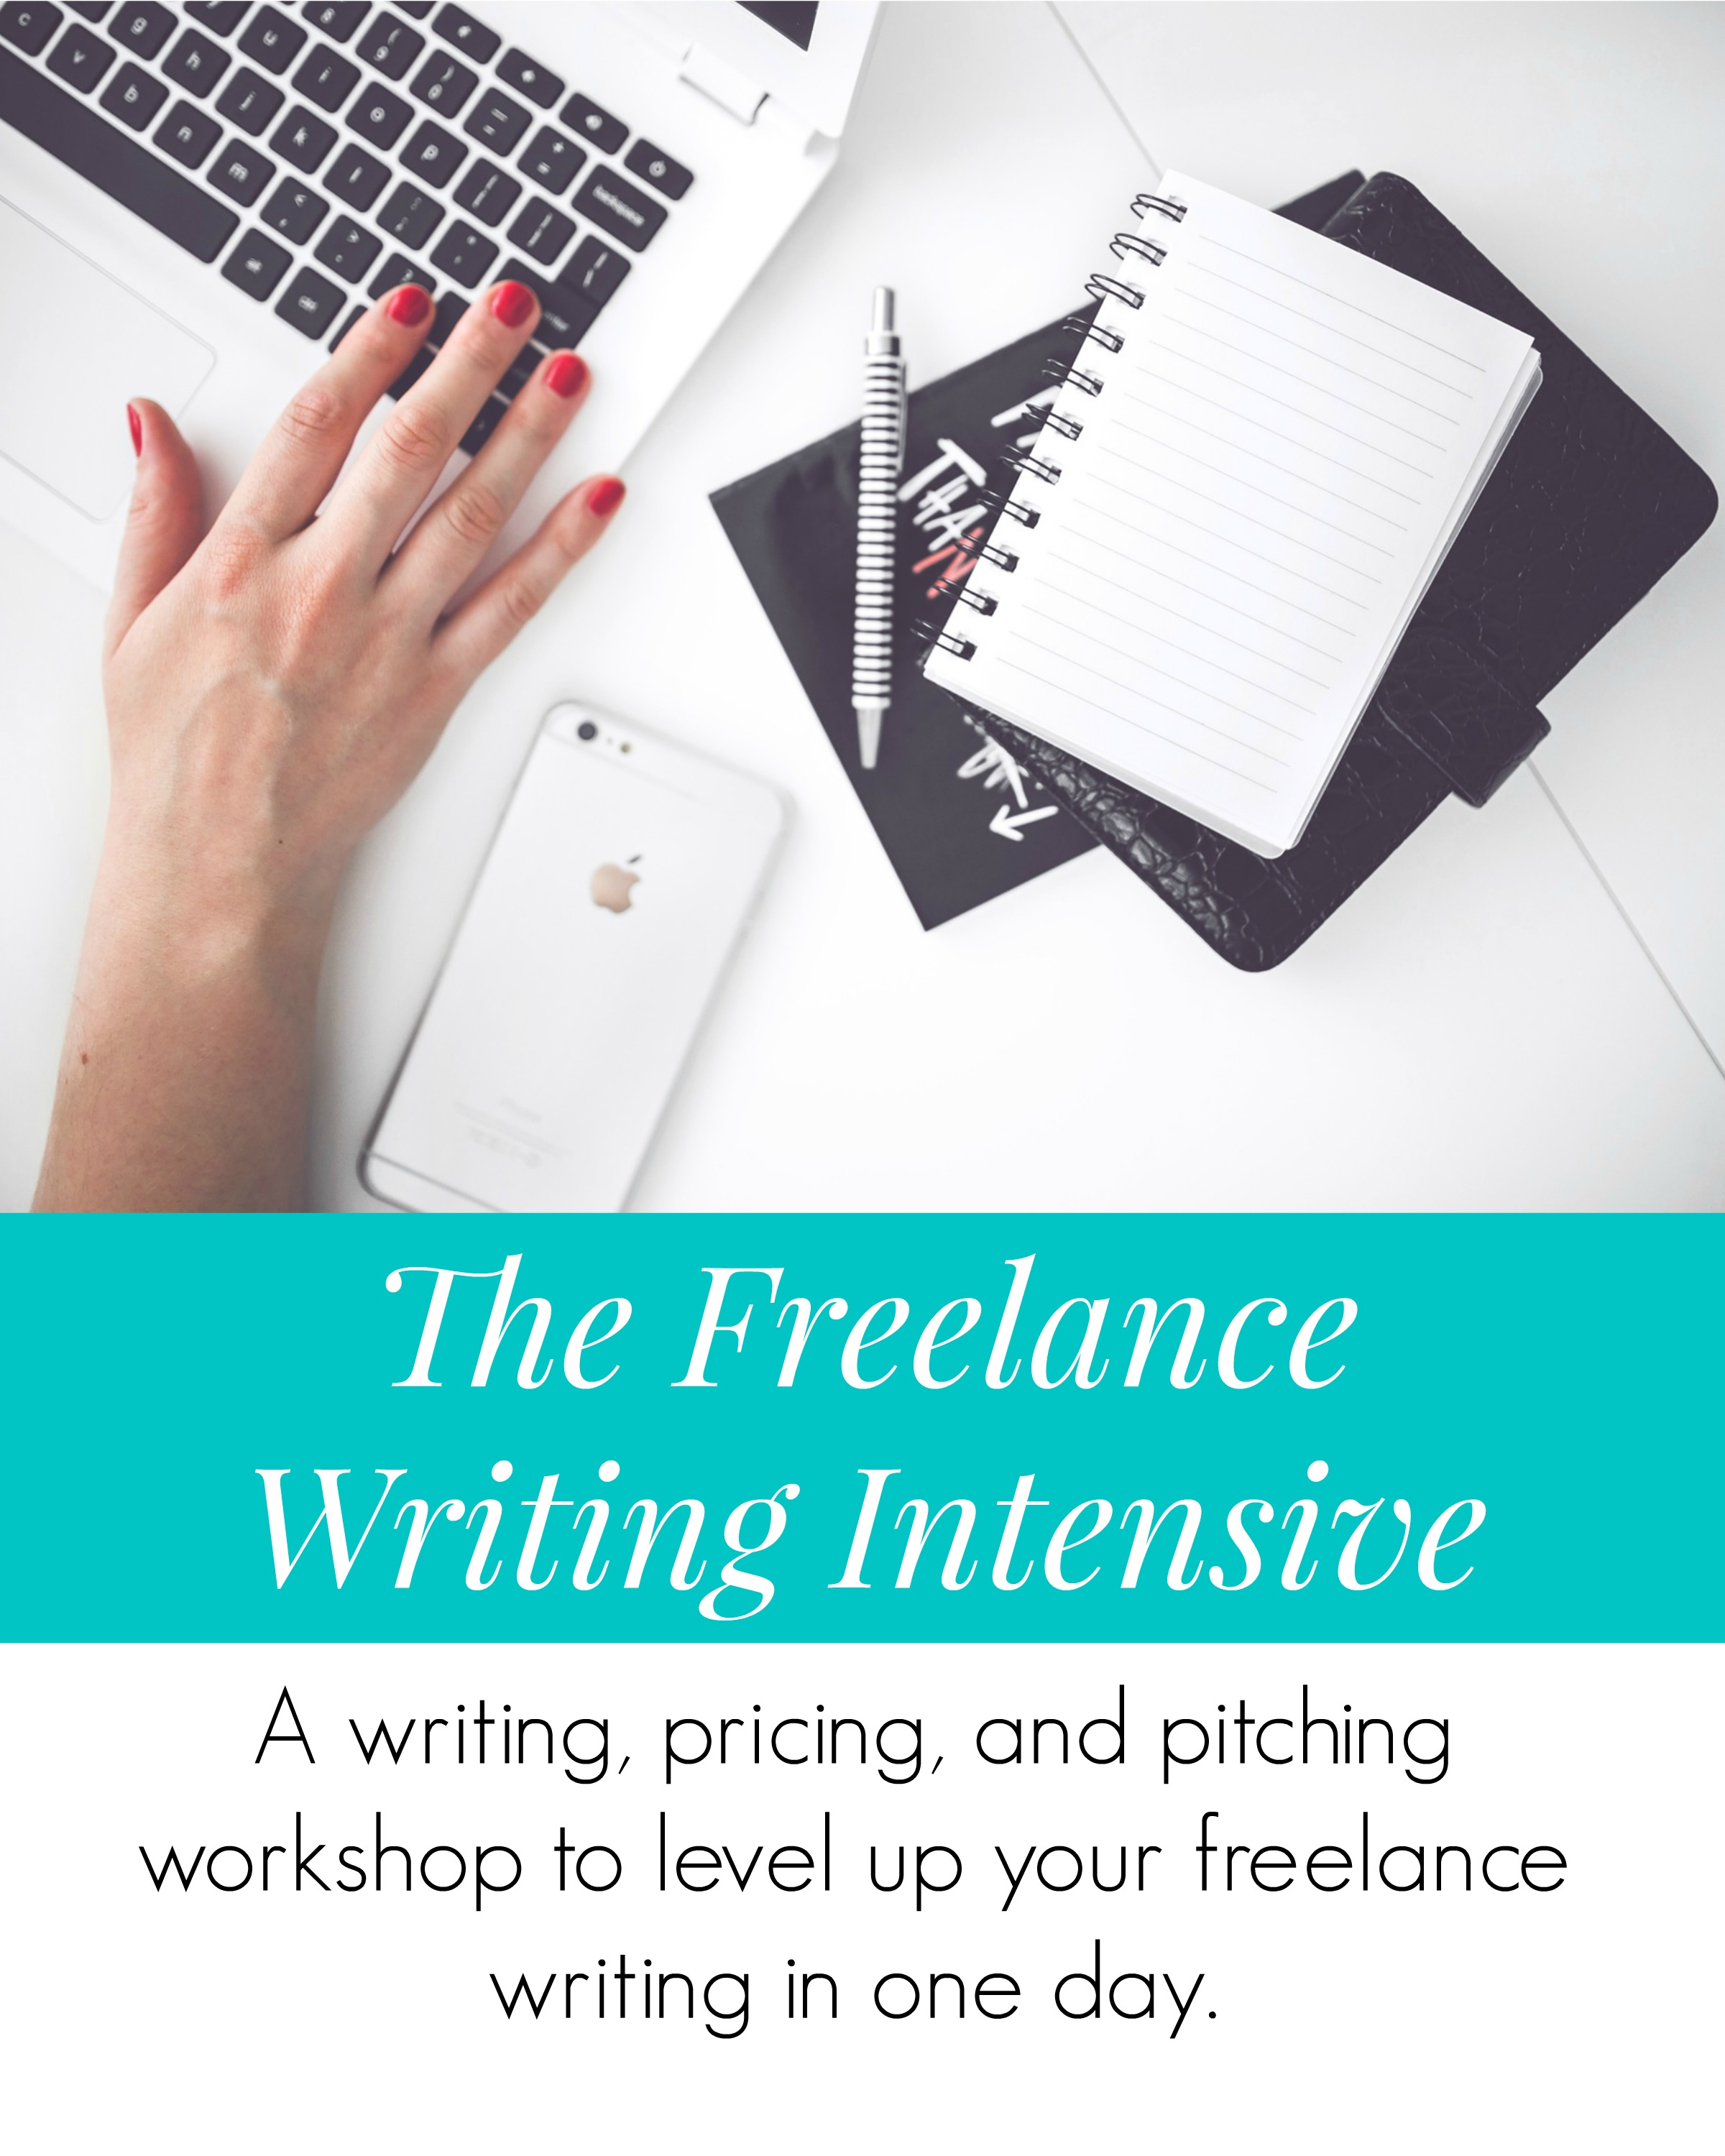 A 1-day writing workshop to help you level-up your freelance writing biz!